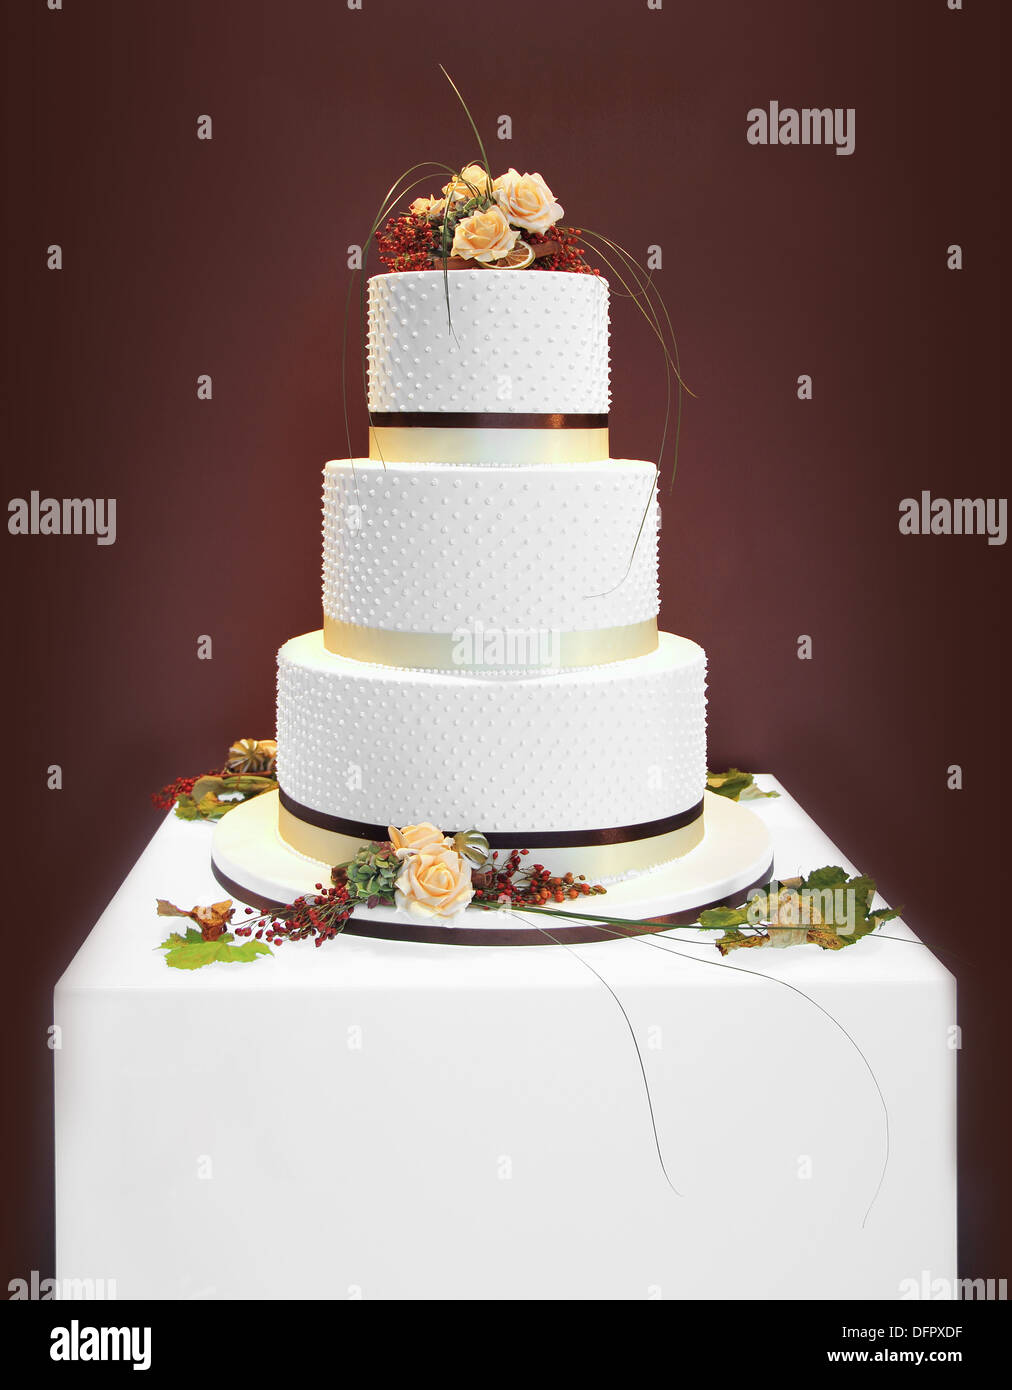 Big white wedding cake decorated with flowers Stock Photo: 61354651 ...